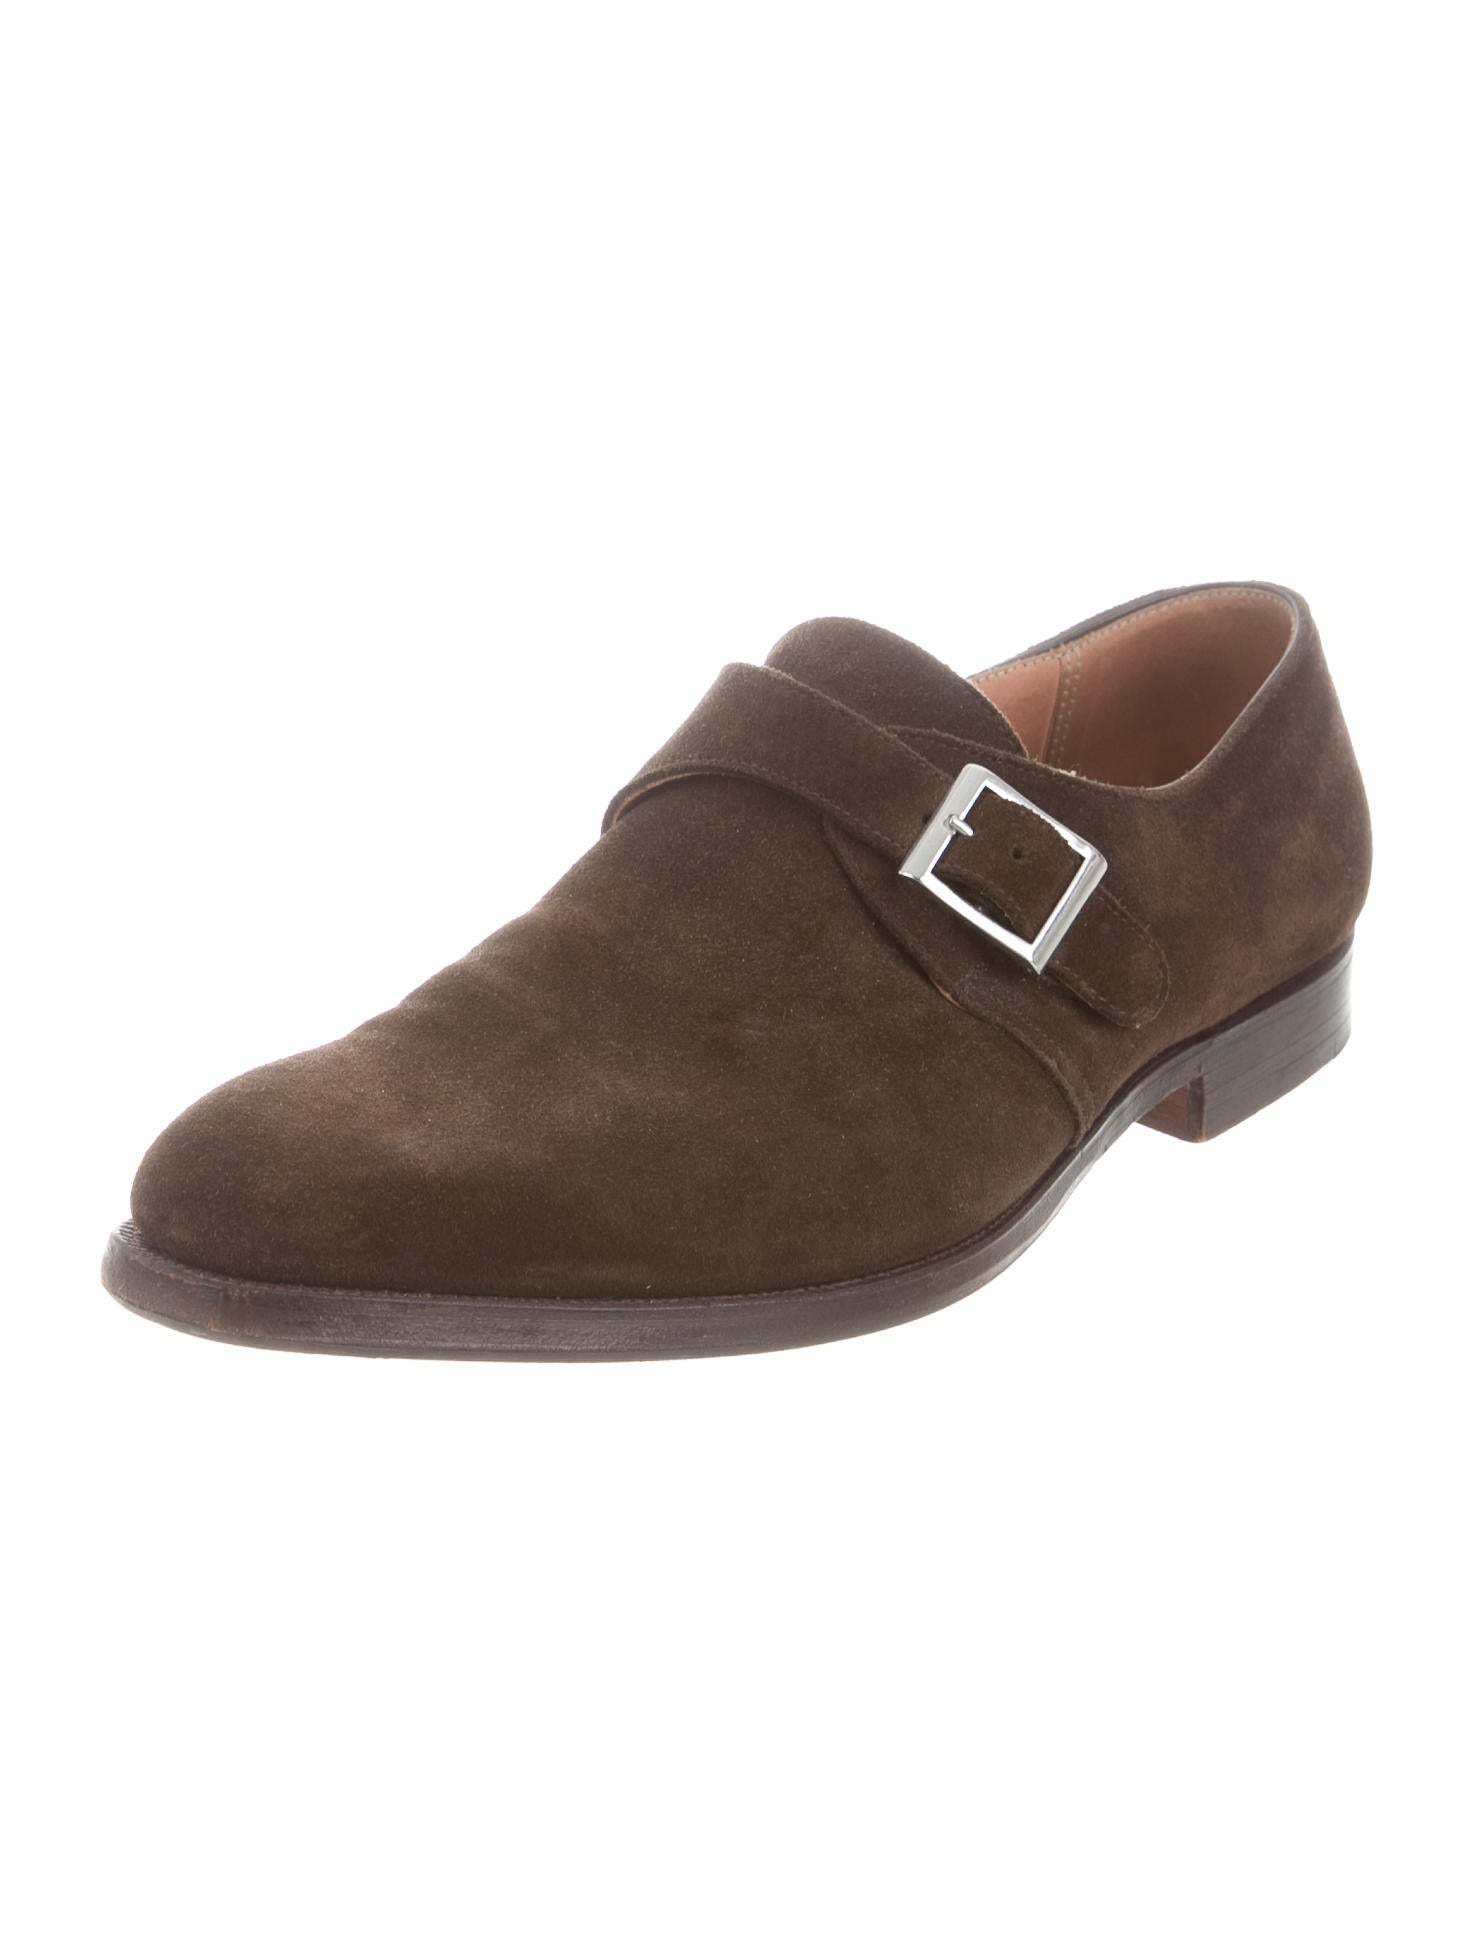 We have monk strap and double monk strap mens luxury dress shoes available in tons of sizes, colors and widths. Handcrafted in Italy from the best calfskin.